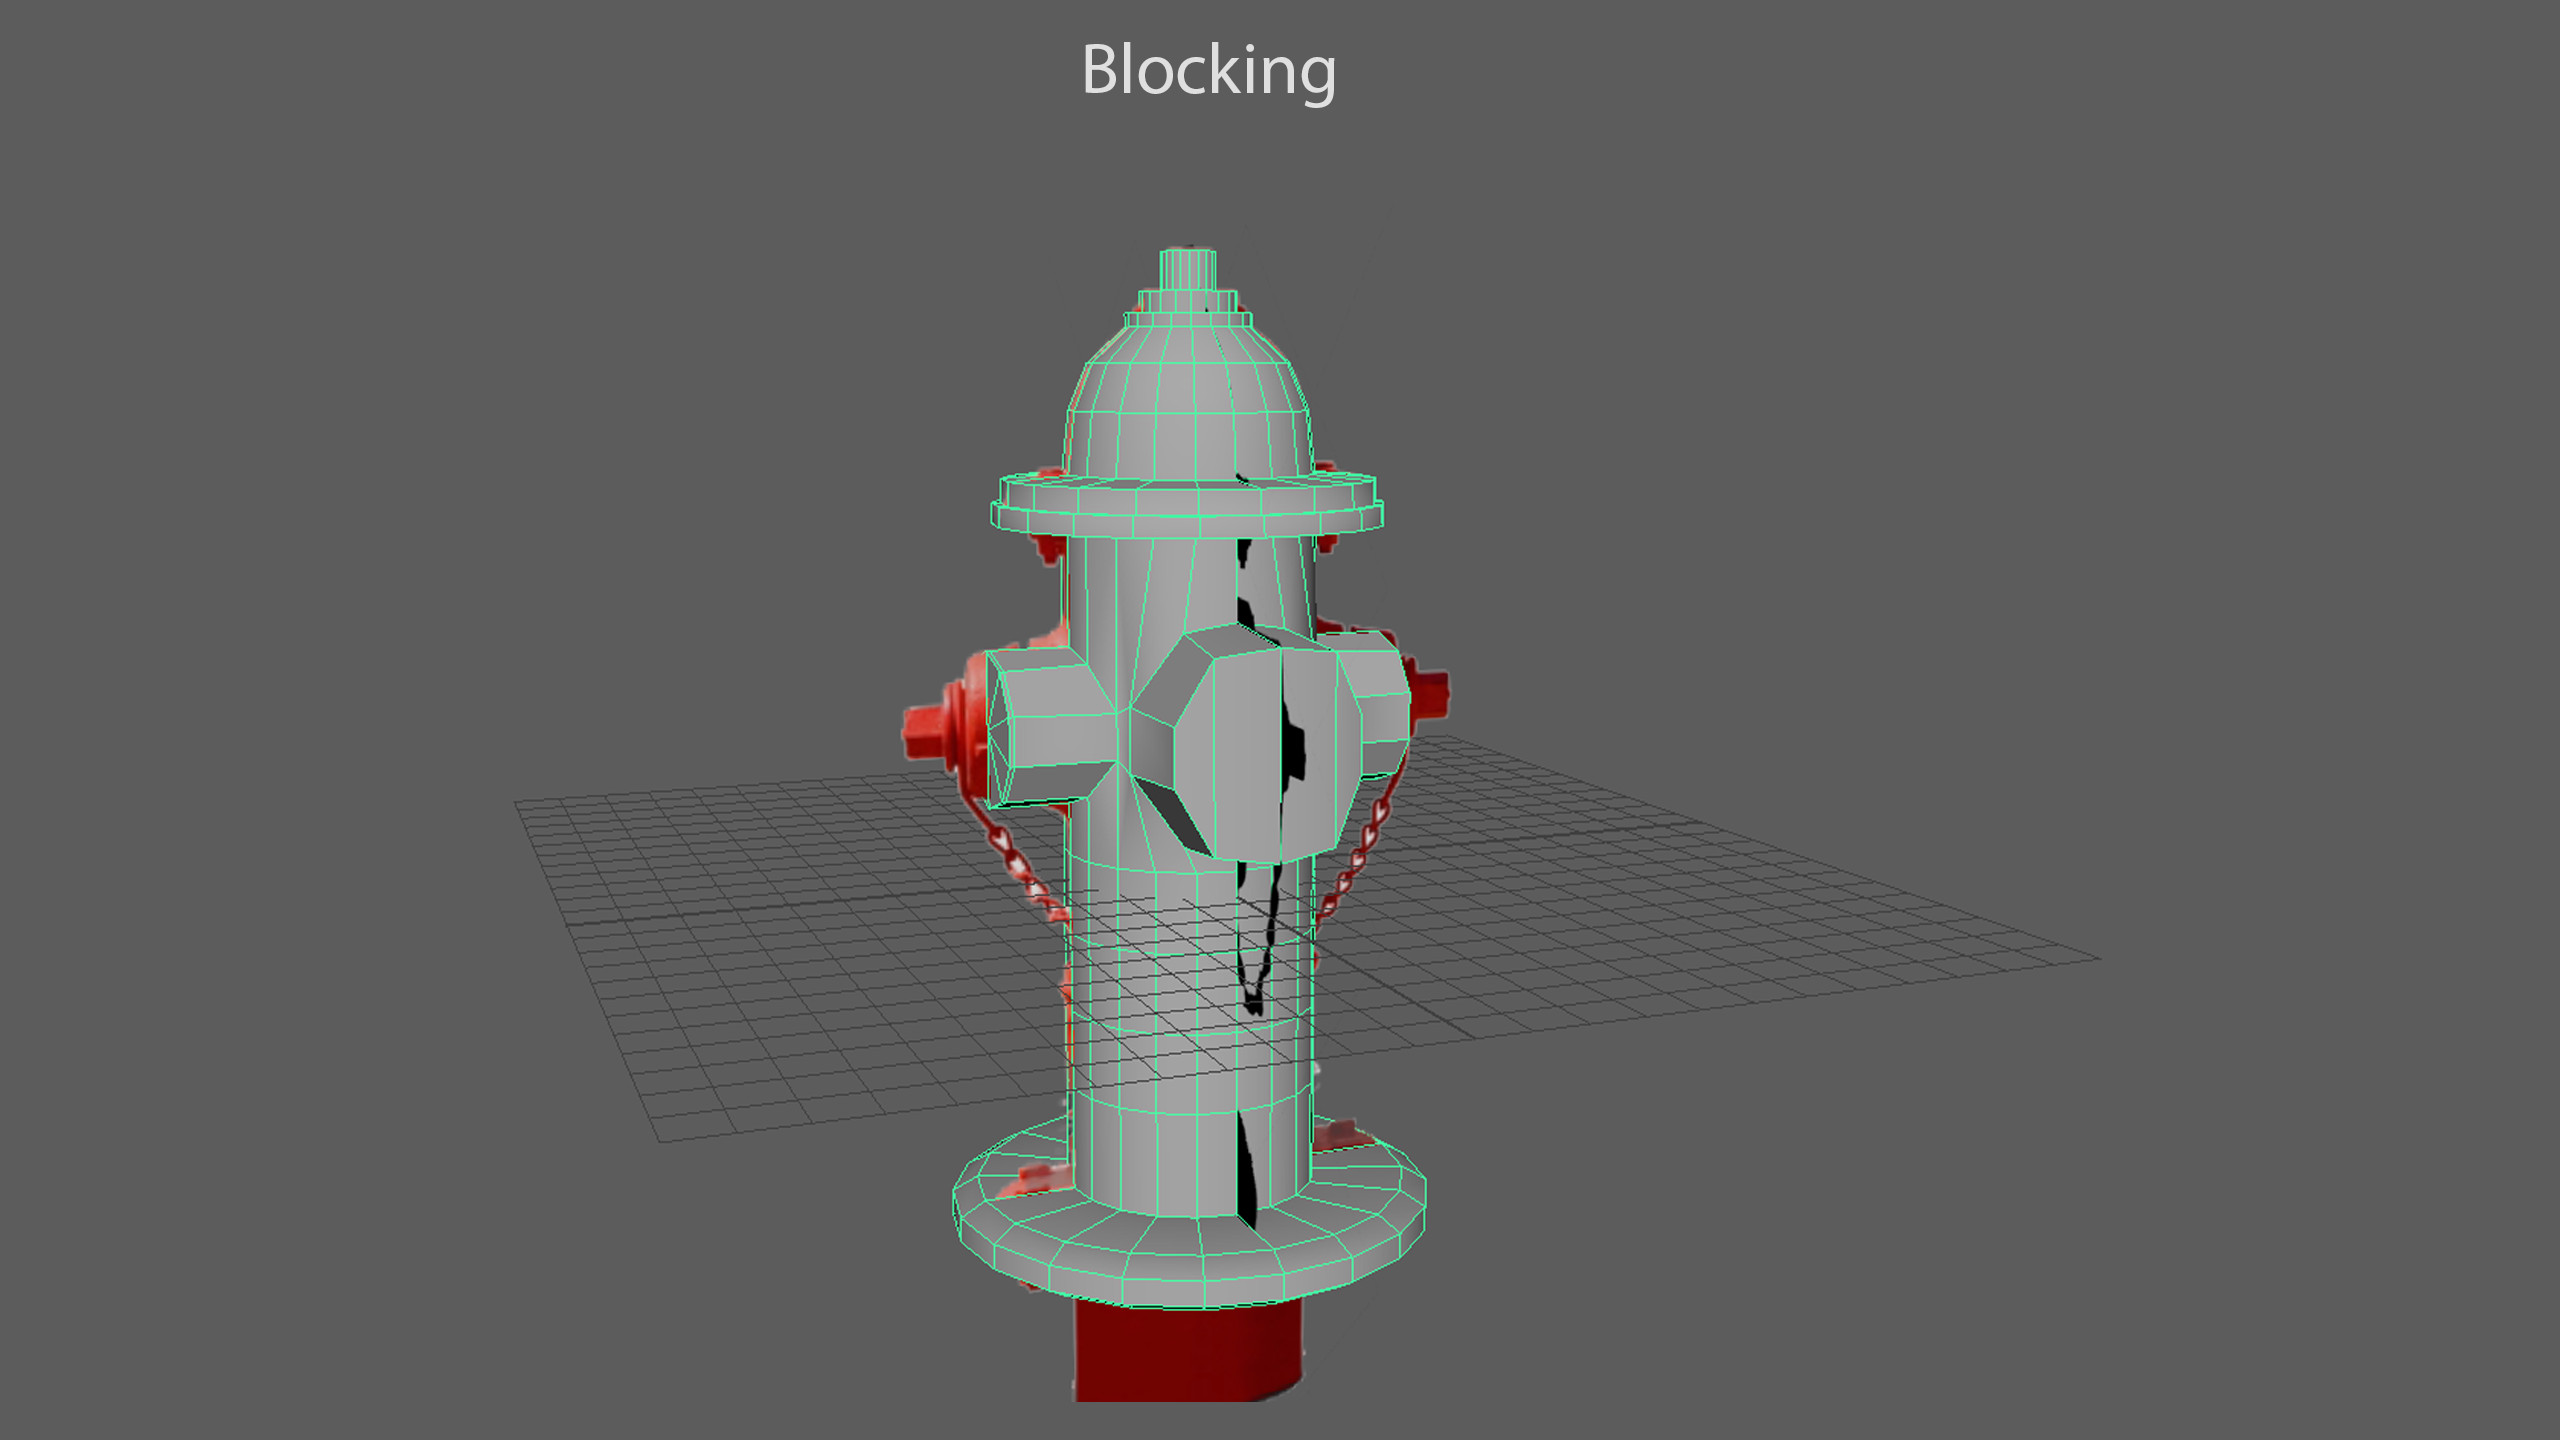 I started by blocking the model with a reference of a fire hydrant, and expanded from there.